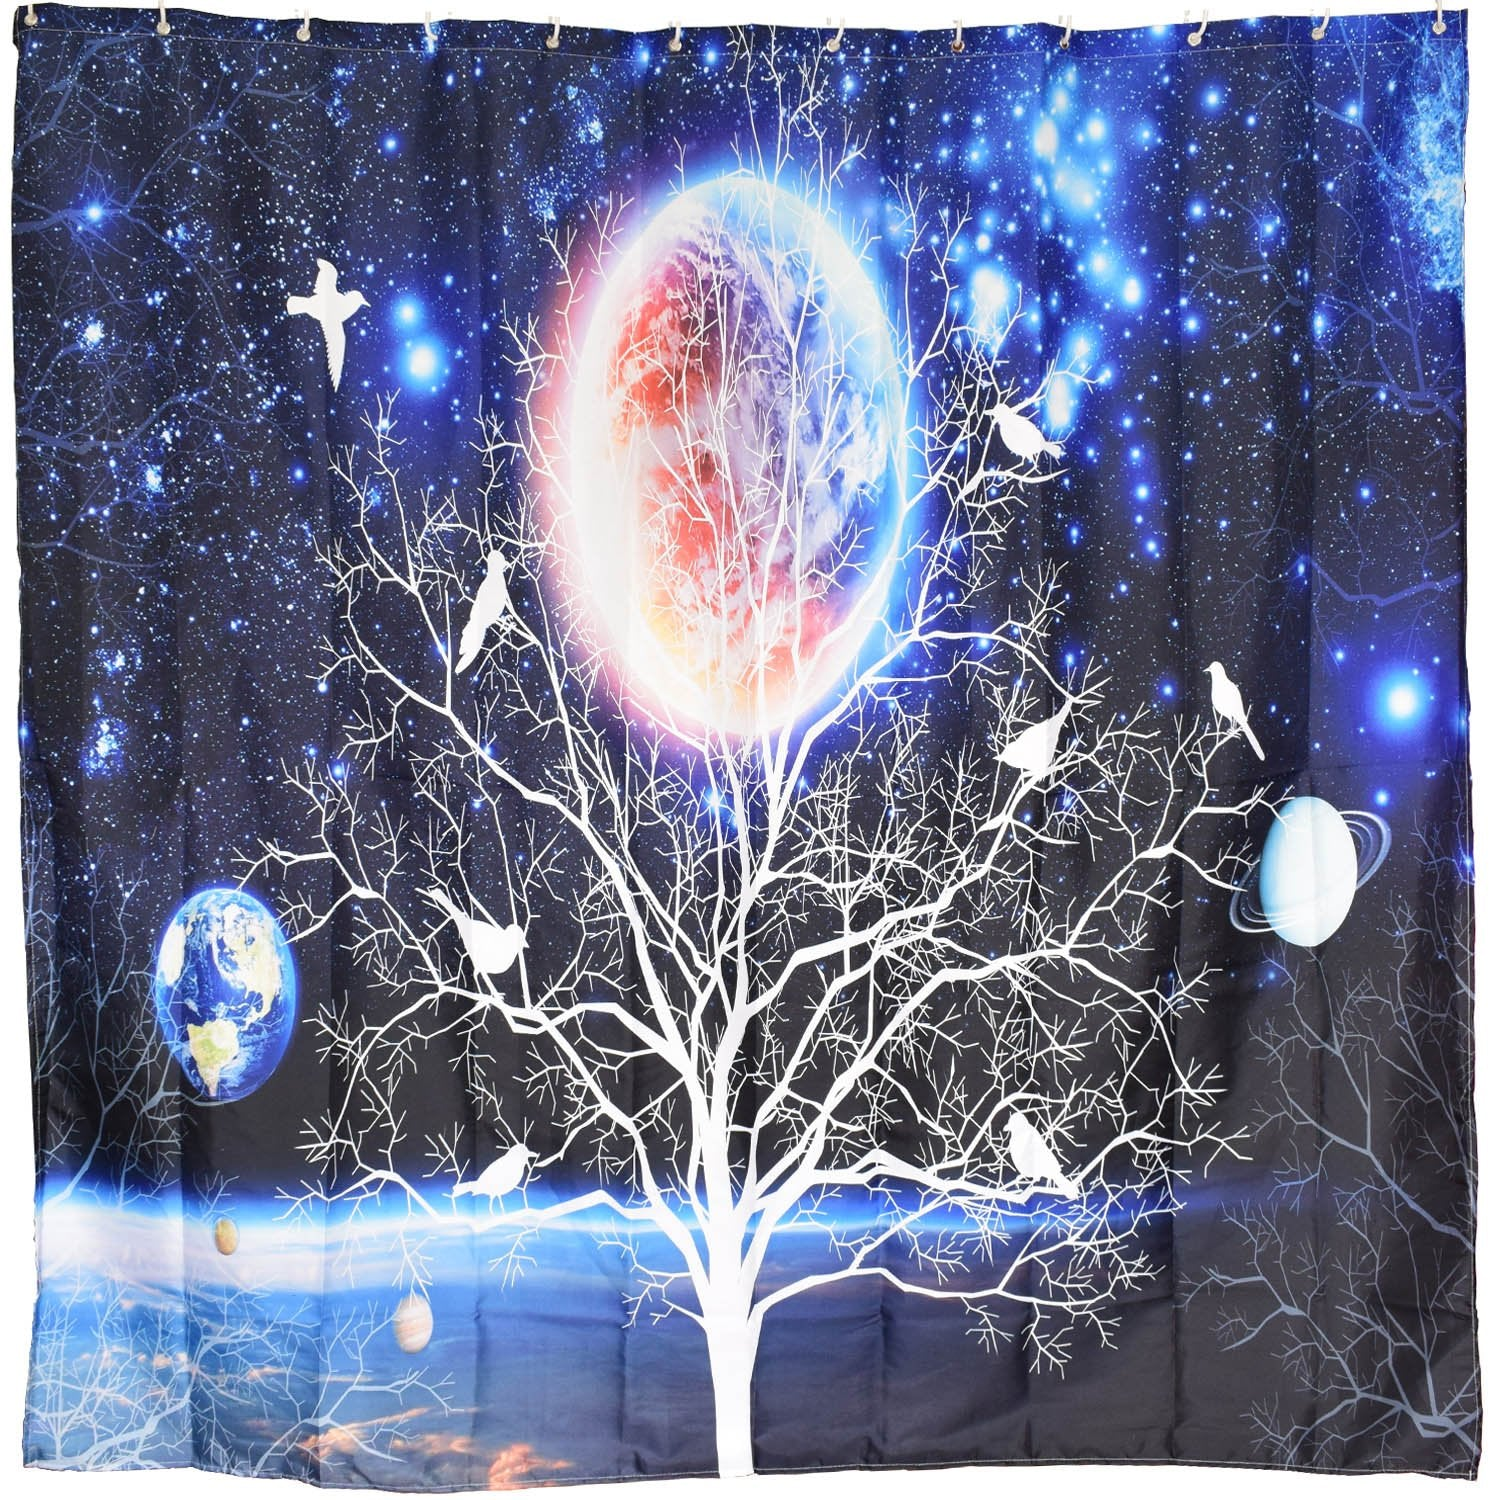 BROSHAN Nature Fabric Shower Curtain Set, Galaxy Nebula Planet Star Tree Birds Silhouette Art Design Blue Space Waterproof Fabric Bathroom Accessories with Hooks,